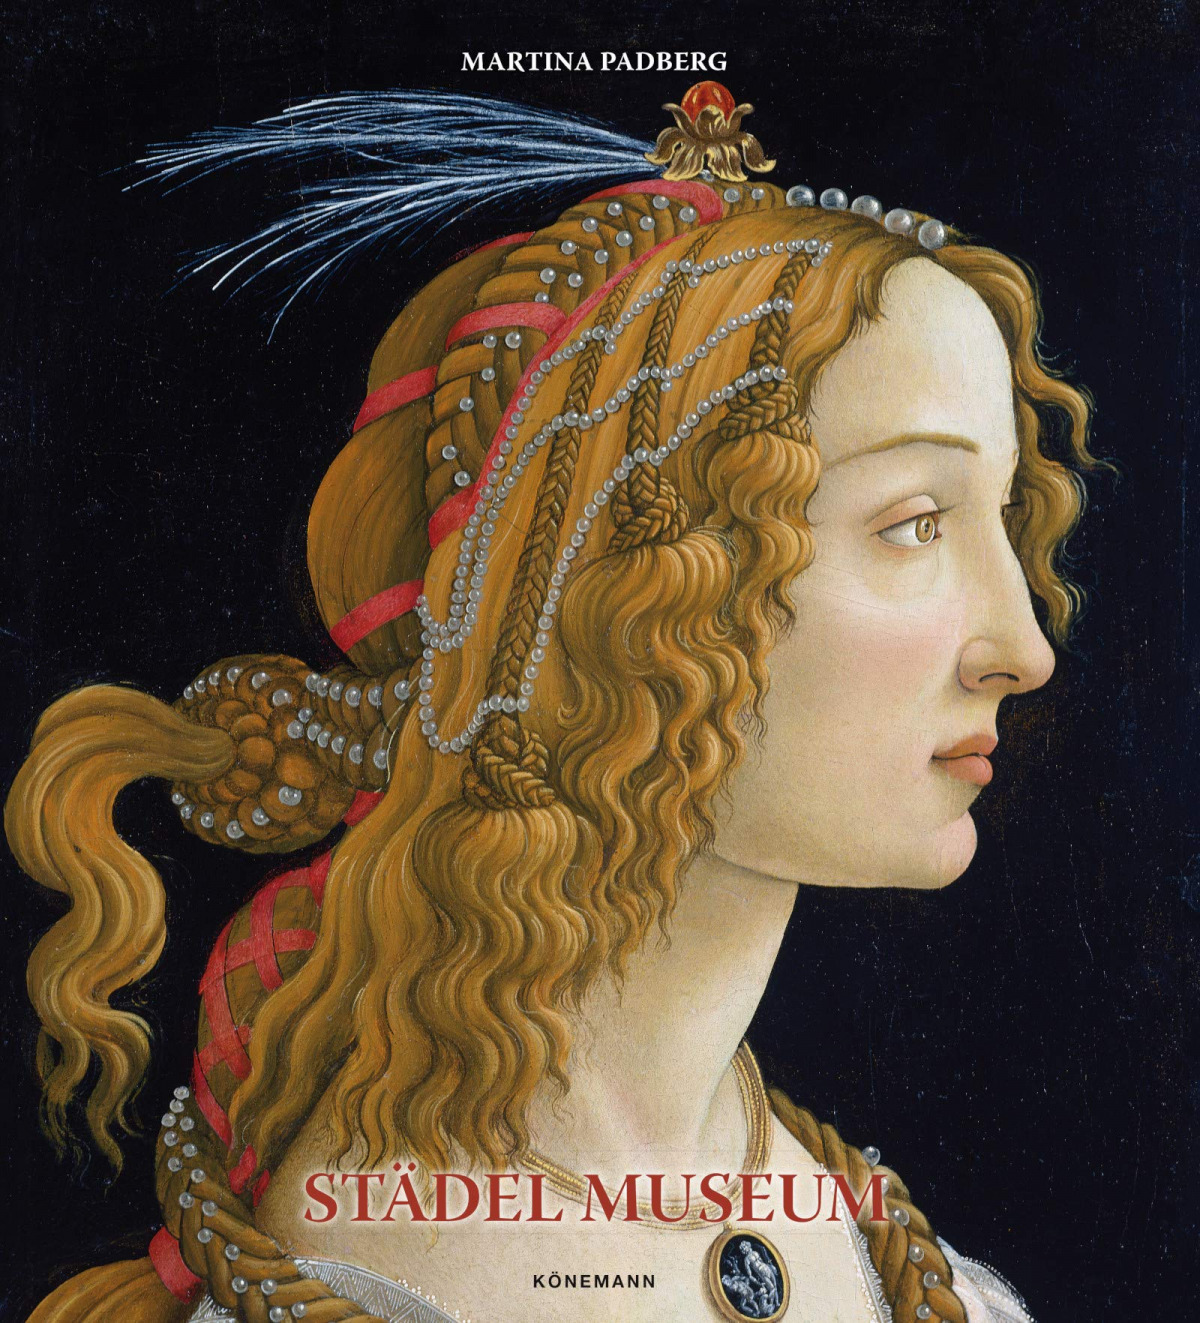 Museo stadel 9783741923166